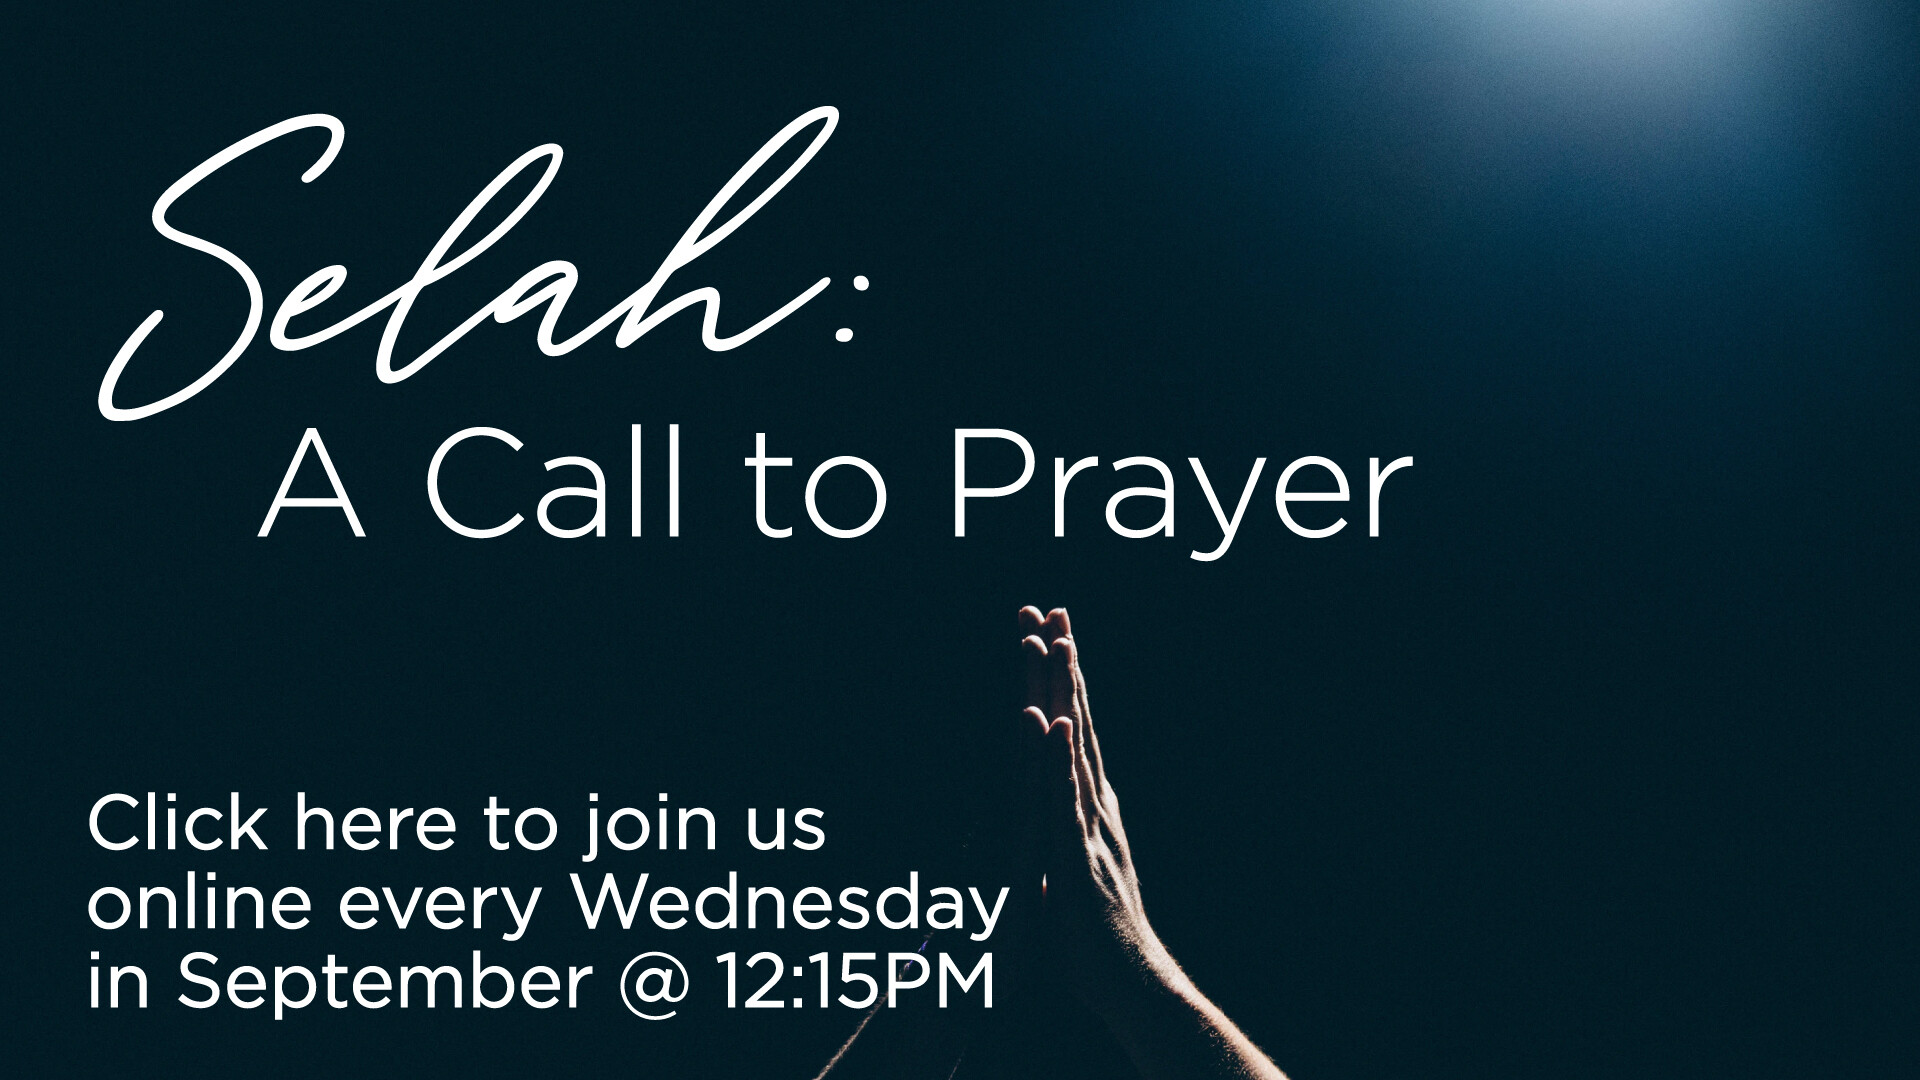 Selah: A Time of Reflection and Intercession - Wednesdays 12:15 PM